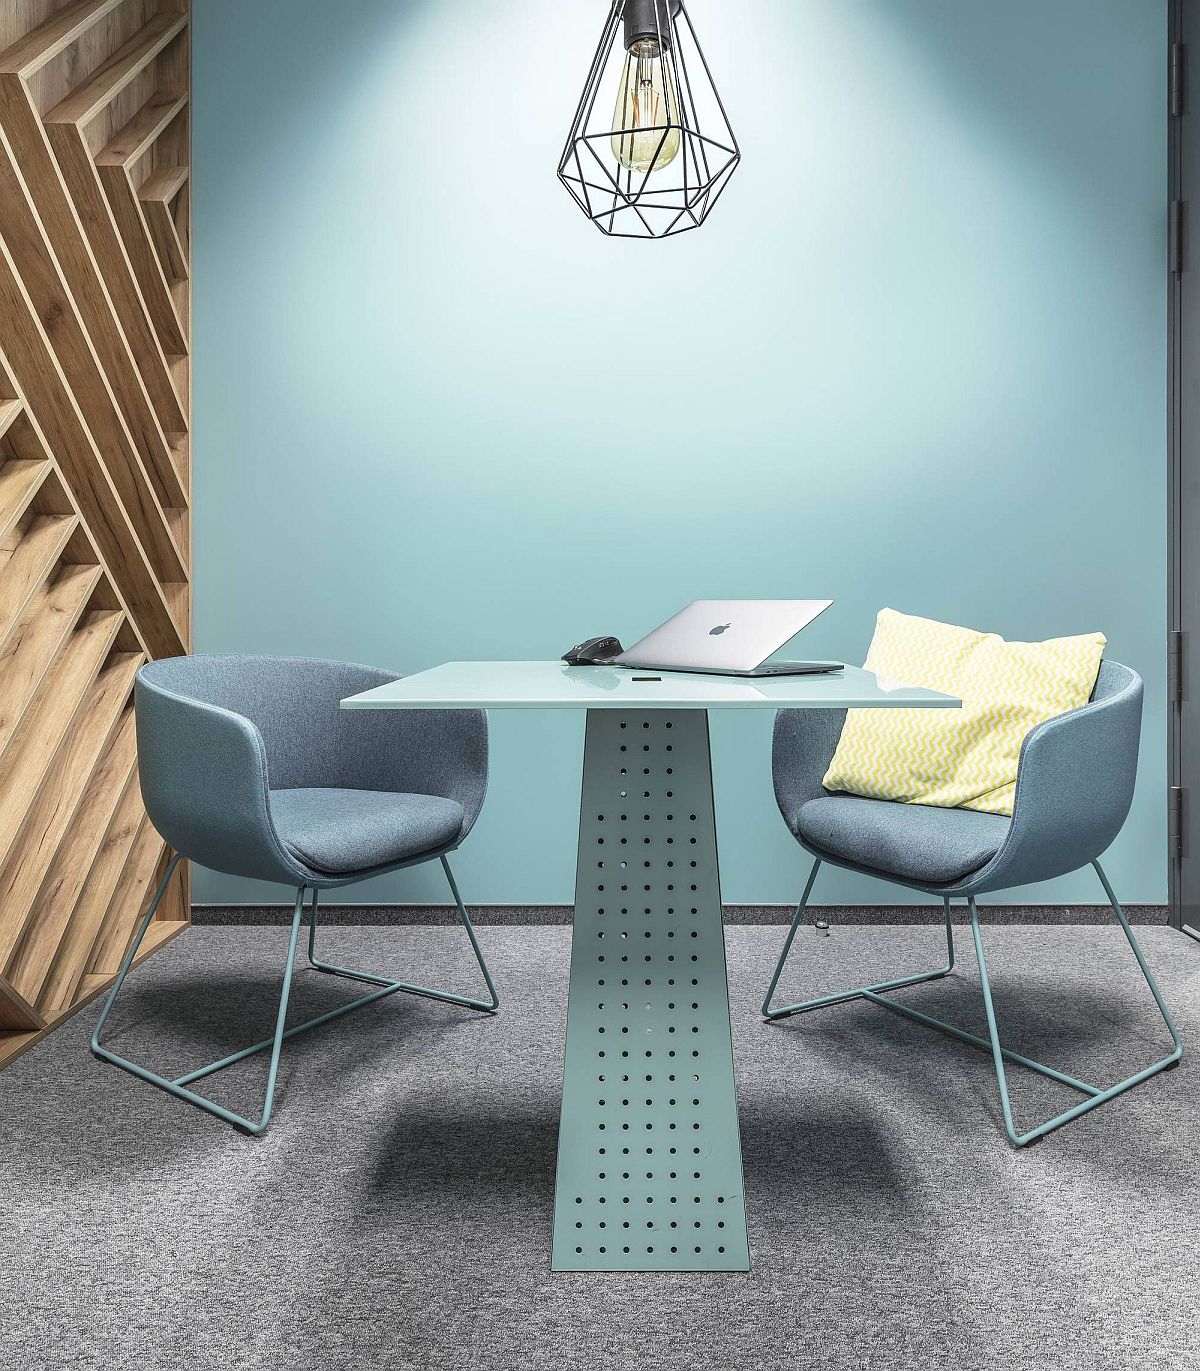 Small meeting rooms with color and individual style